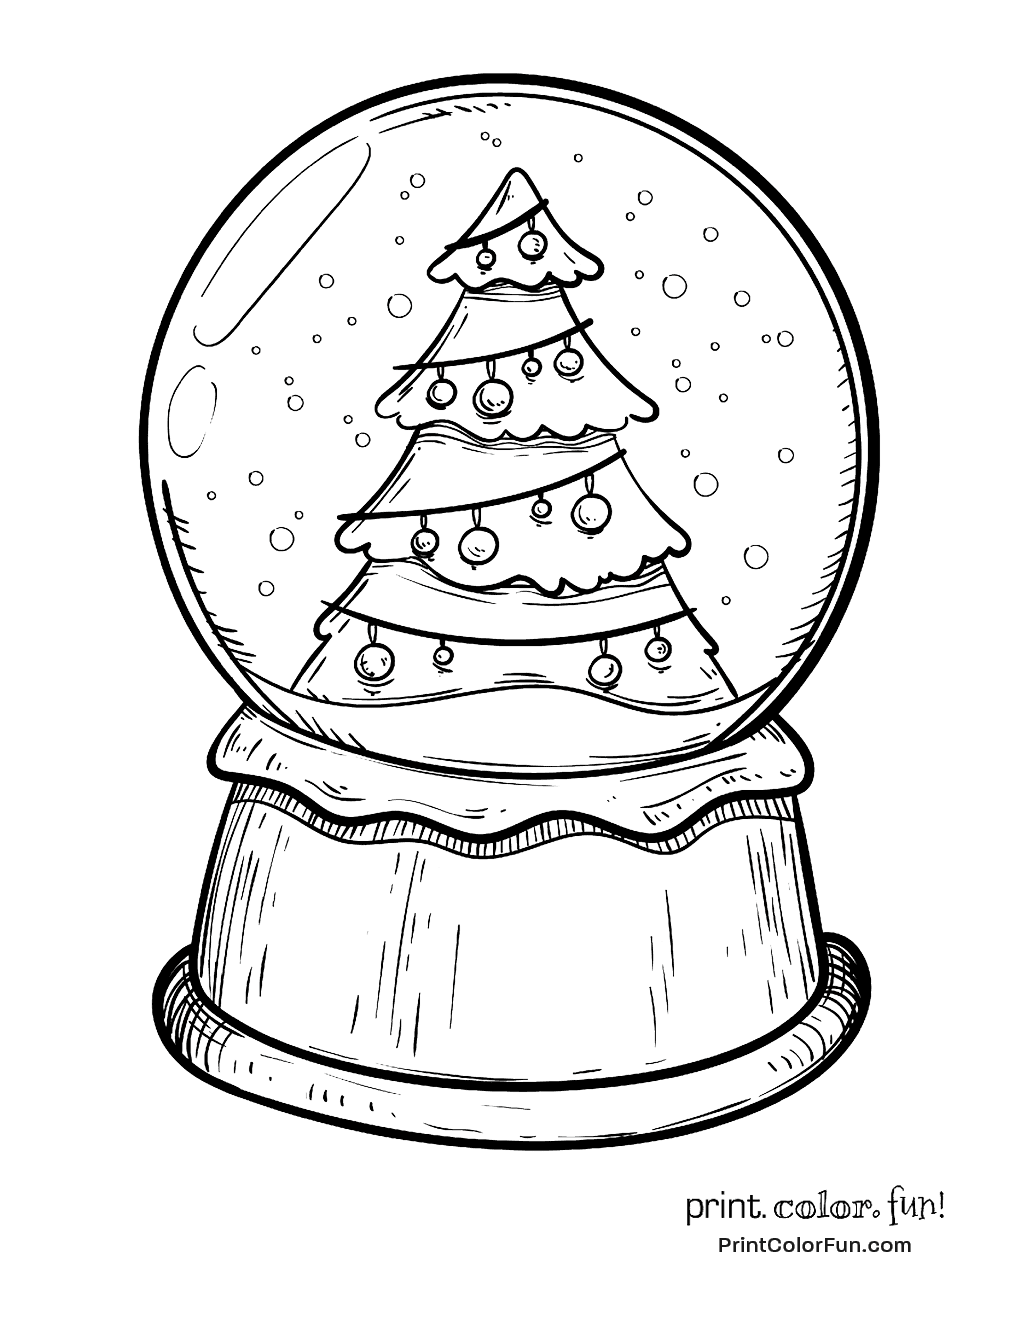 Christmas tree snow dome colouring in page for children